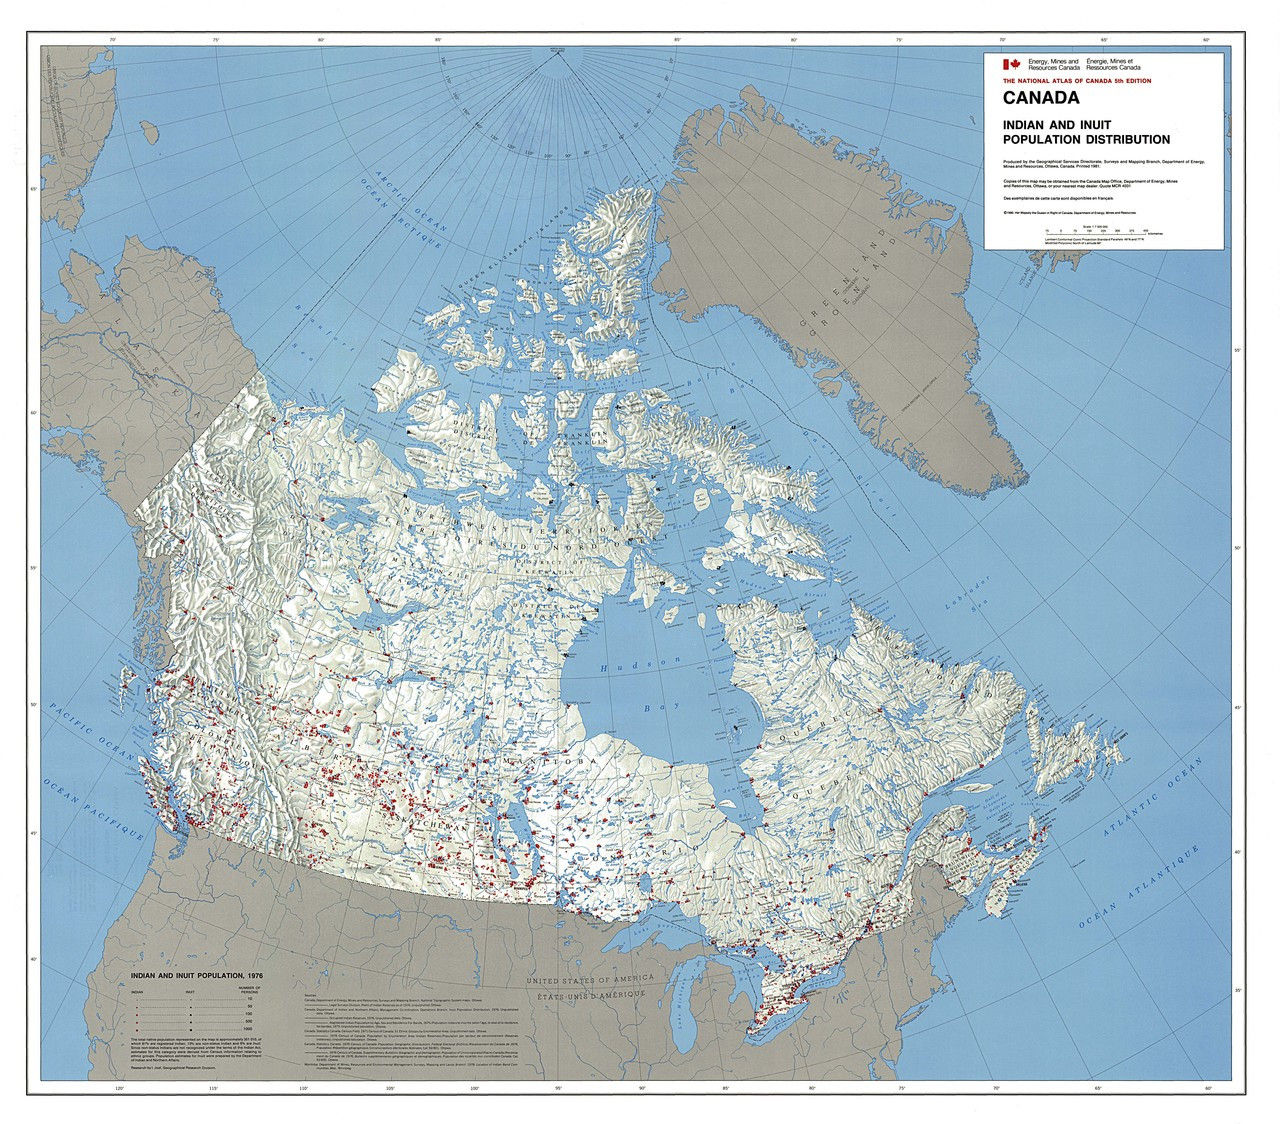 Map Of Canada America.Canada Indian Inuit Population Distribution Map